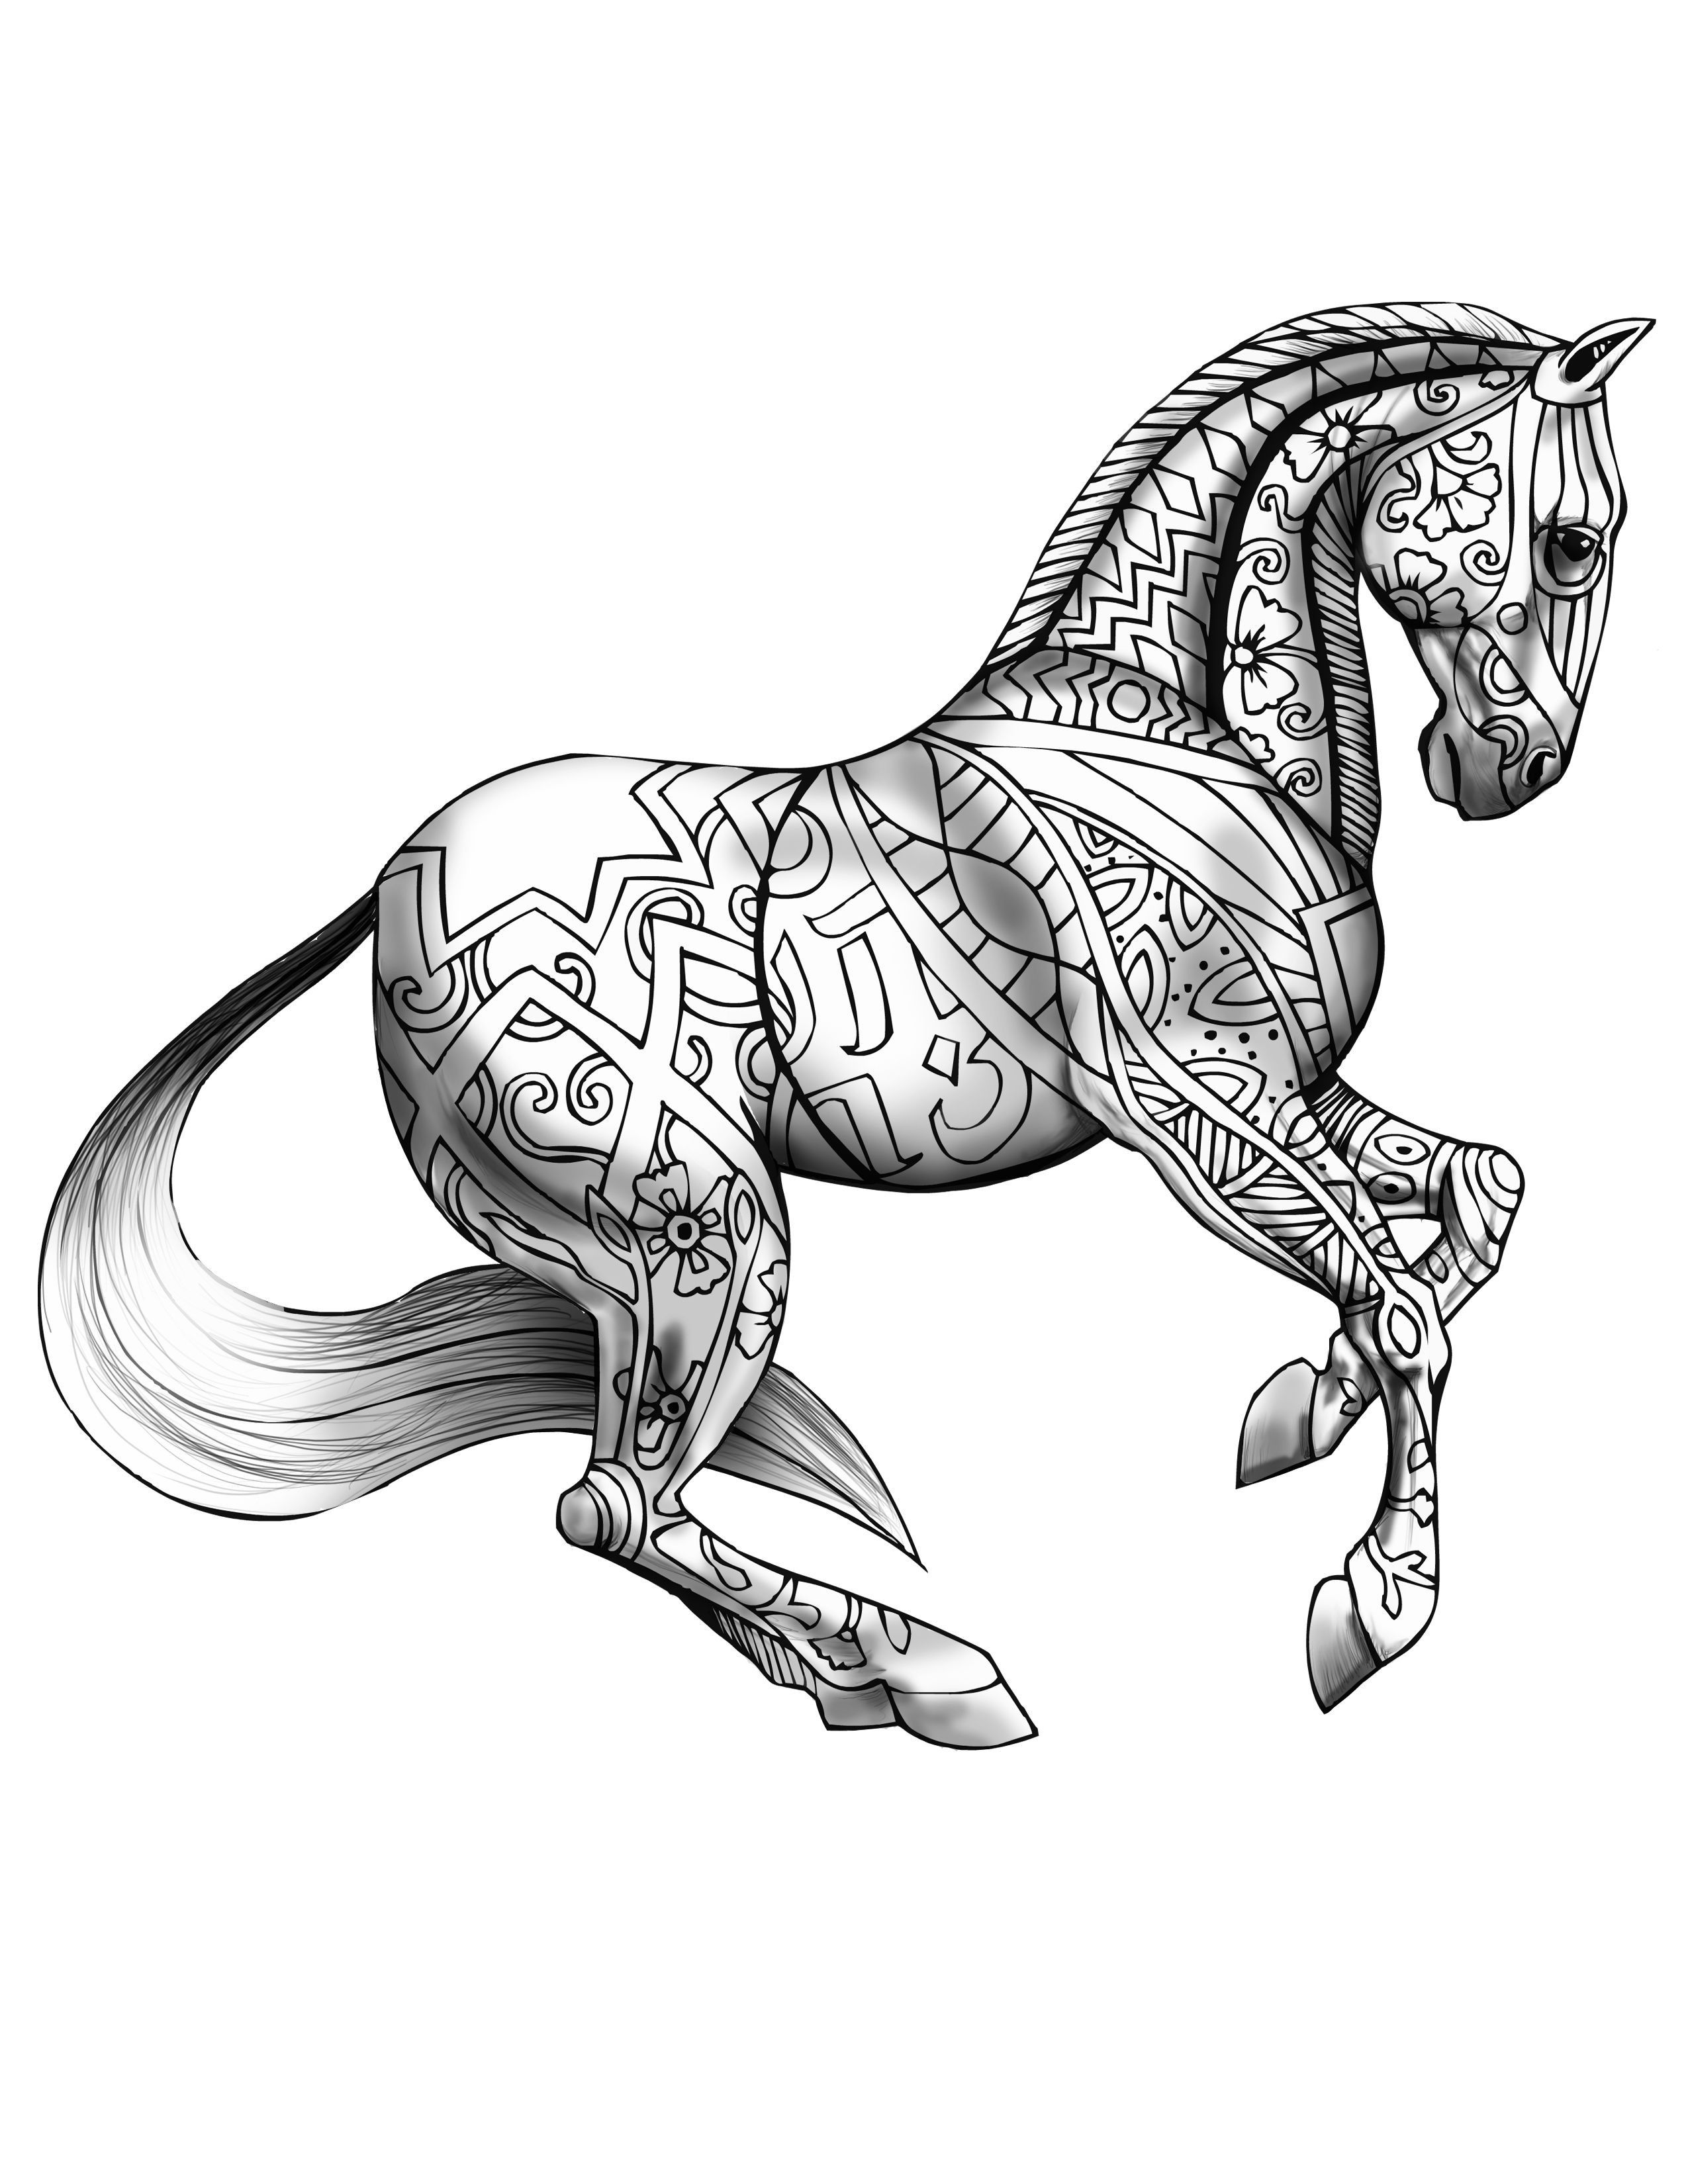 horses to print and color 30 best horse coloring pages ideas weneedfun print to horses color and